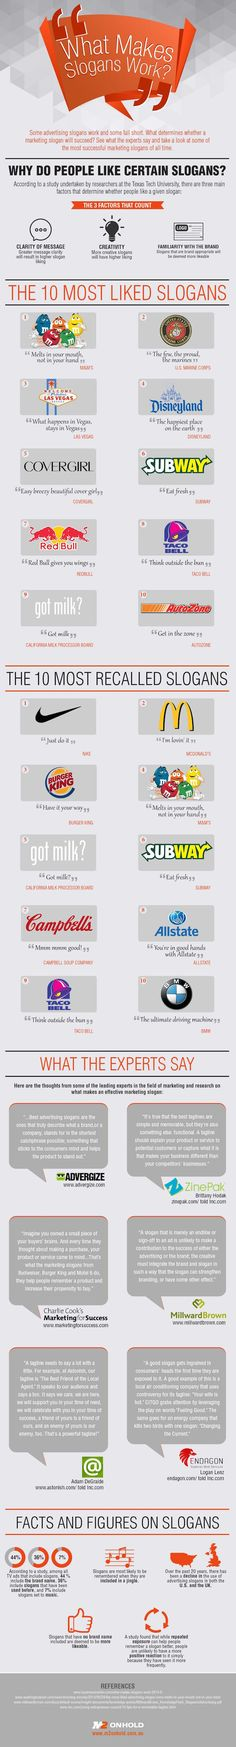 What makes a slogan successful? 1) Clarity of message. 2) Creativity. 3) Familiarity with the brand. #slogans #branding